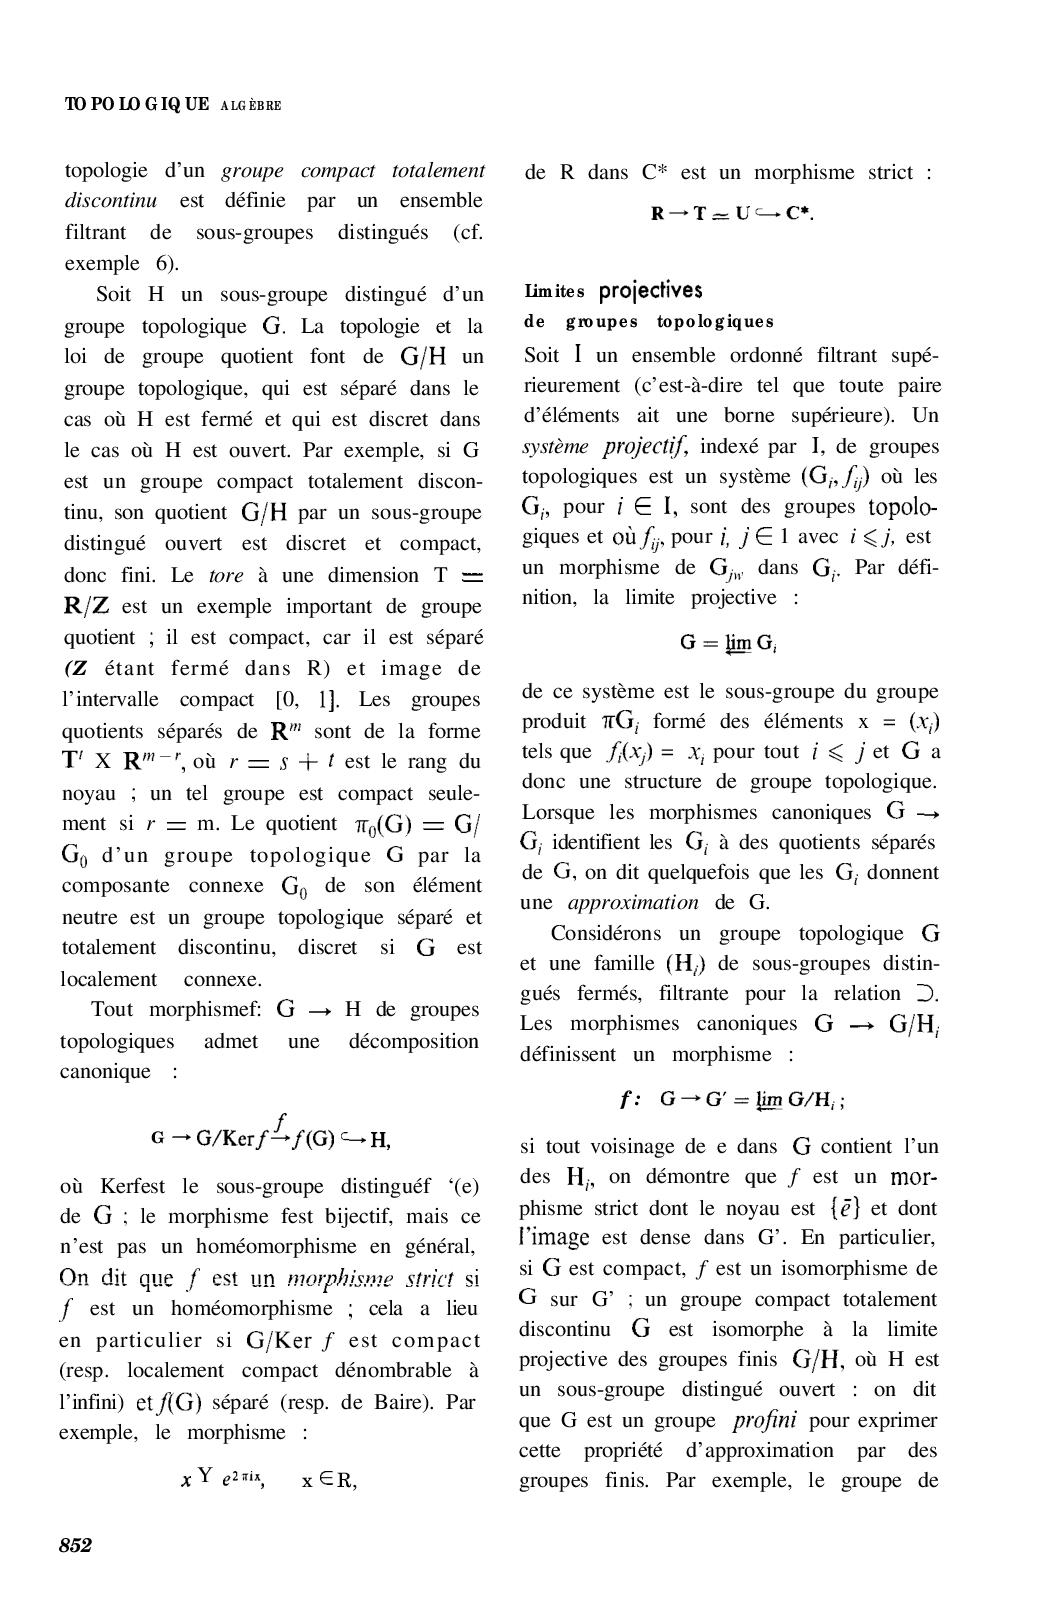 Page 850